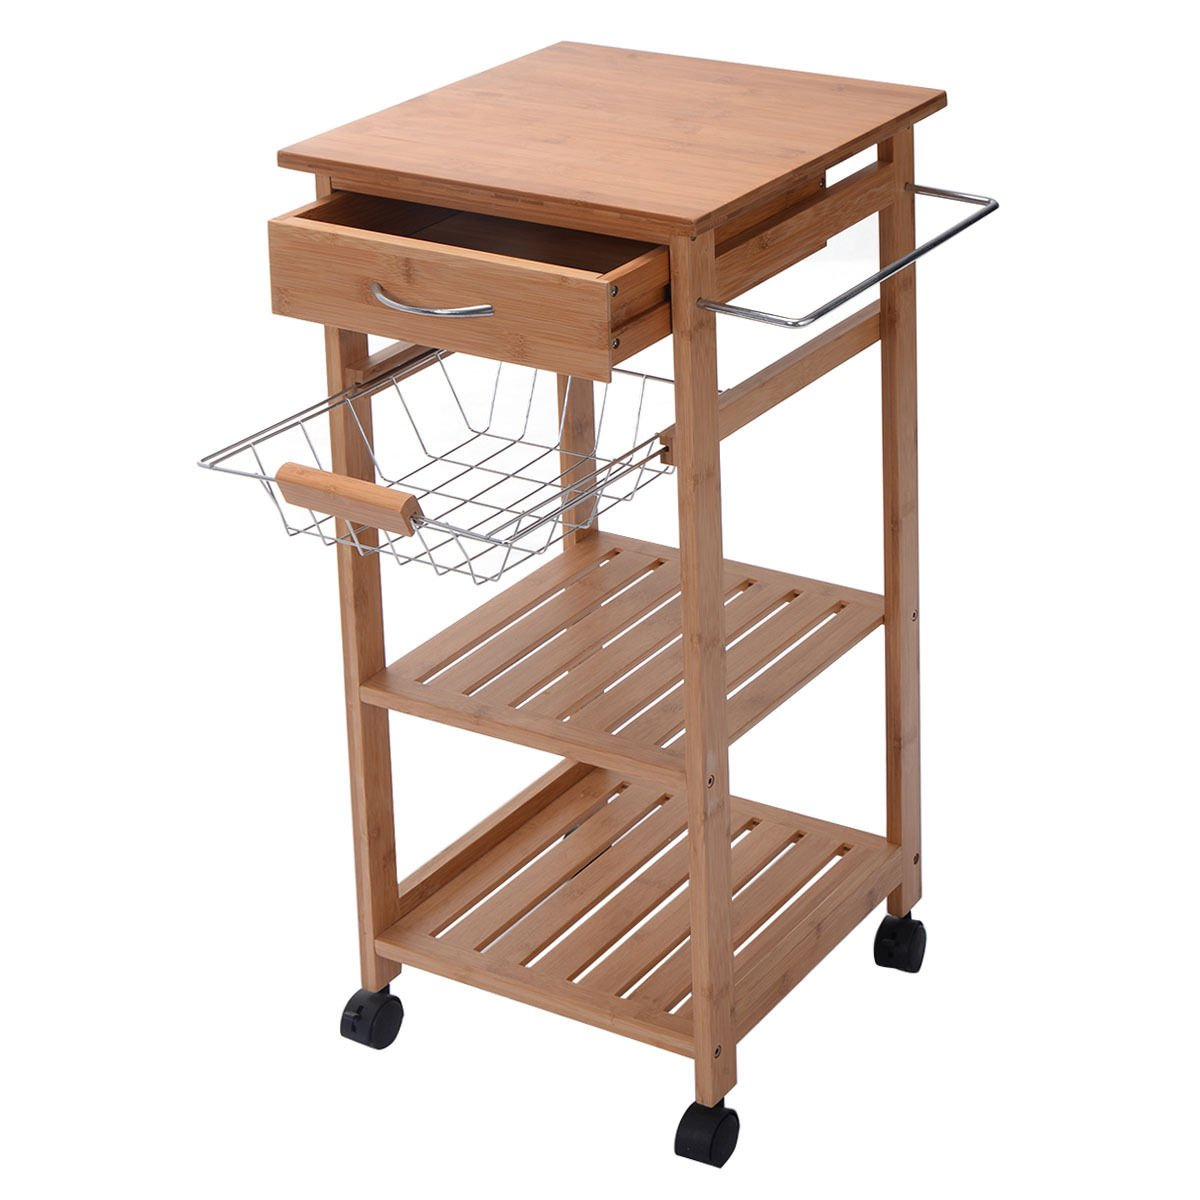 Eight24hours Rolling Bamboo Kitchen Trolley Cart Storage Shelf Island w- Drawer Baskets New